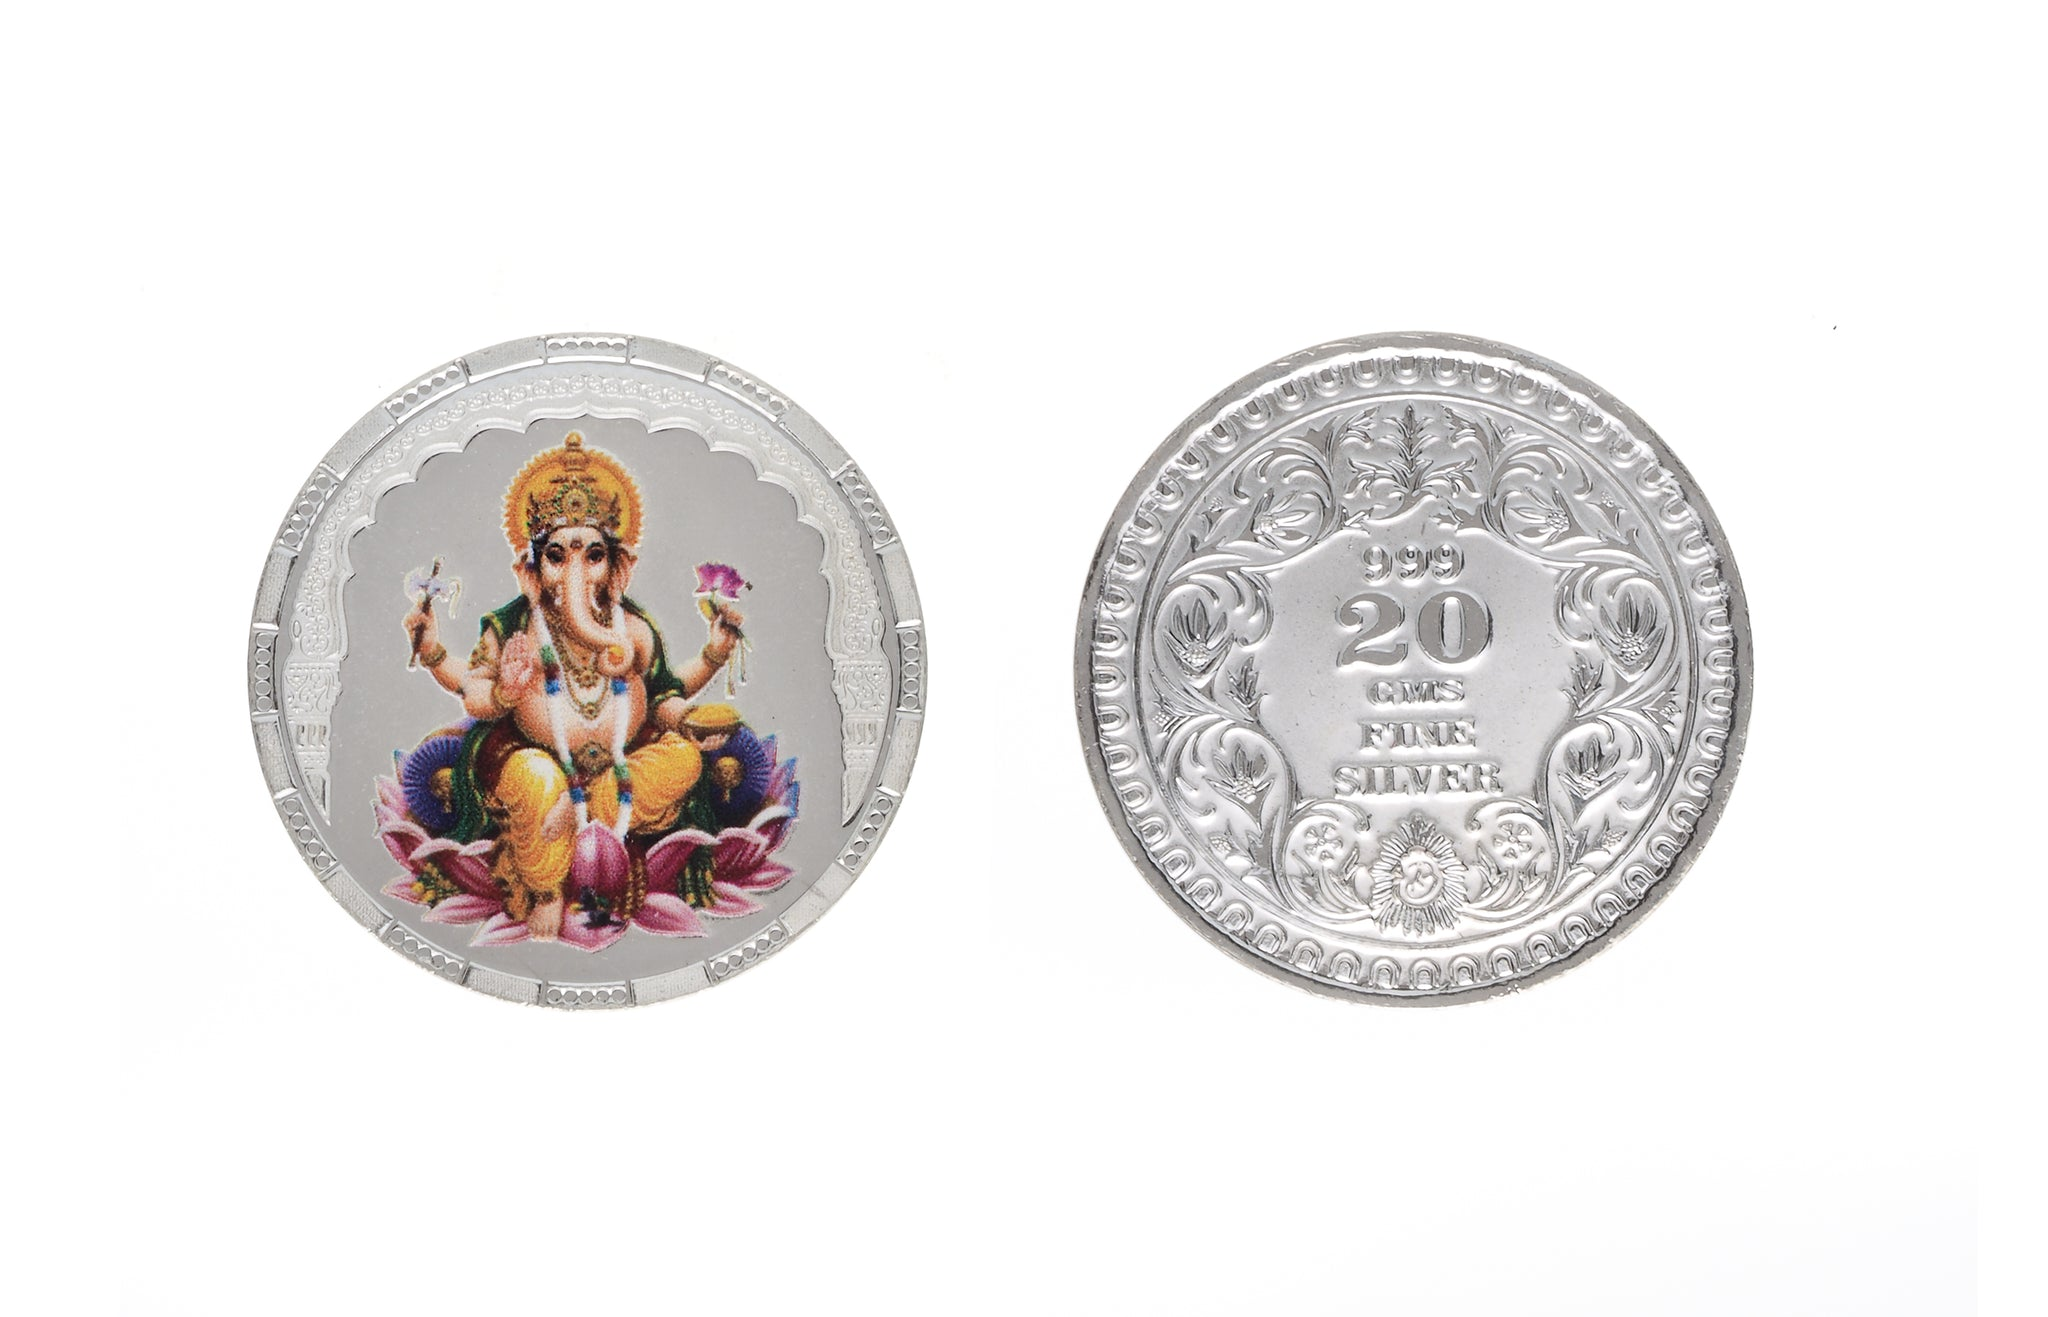 Sterling Silver Coin featuring Ganesh (G20gcolour)